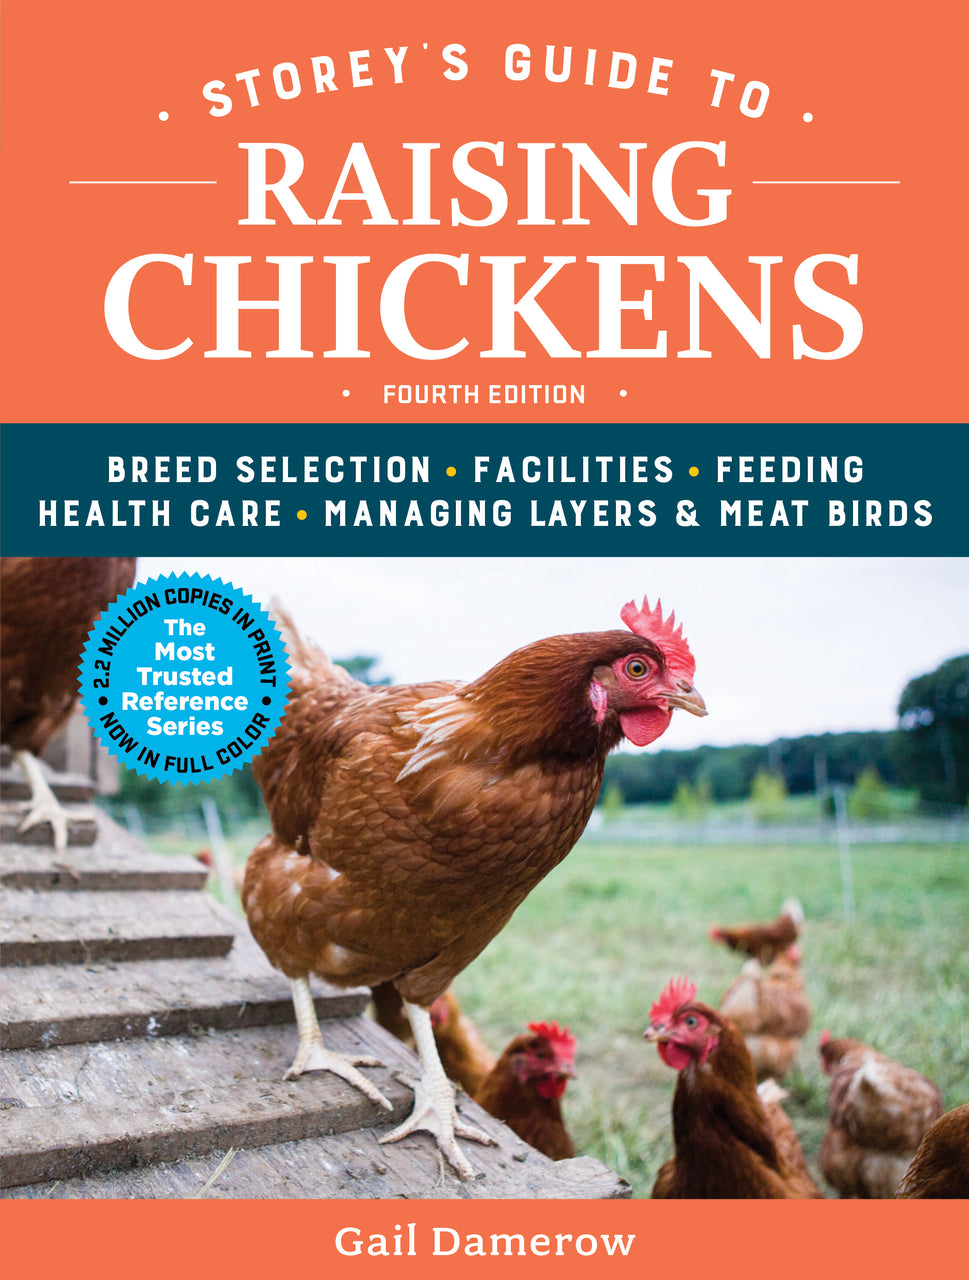 BK46  Storey's Guide To Raising Chickens